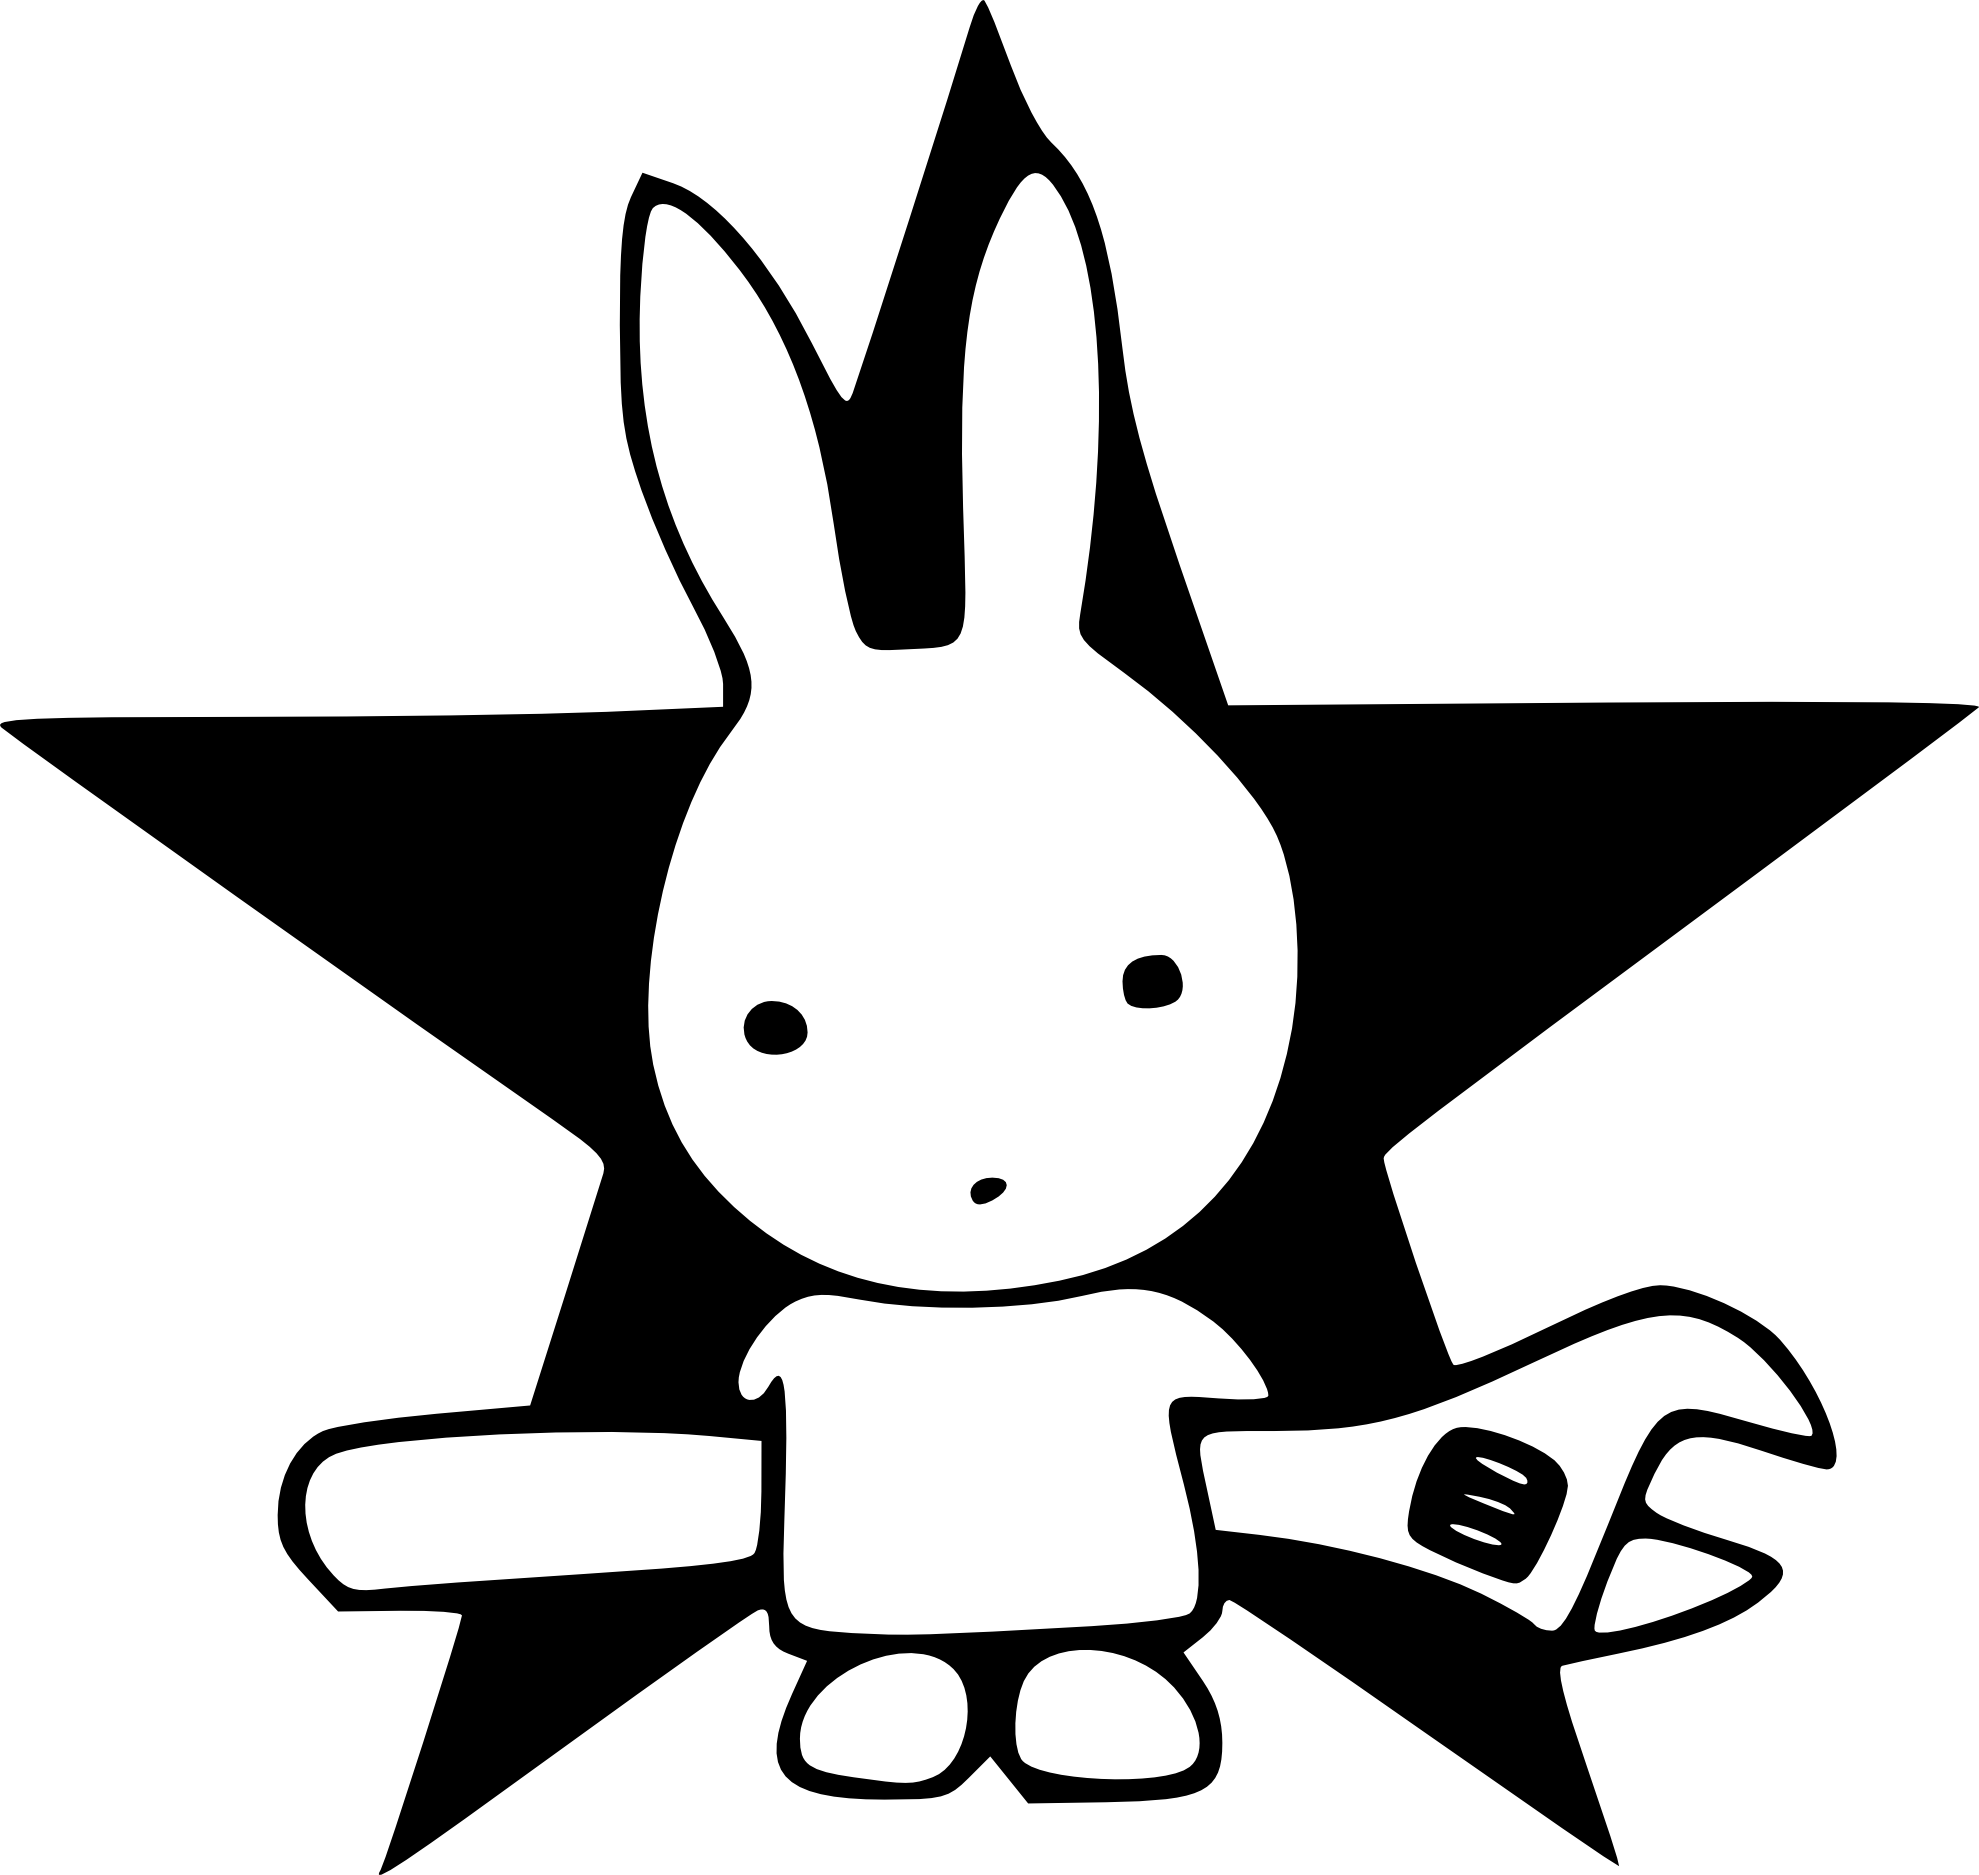 Action rabbit black white. Snake clipart illustration